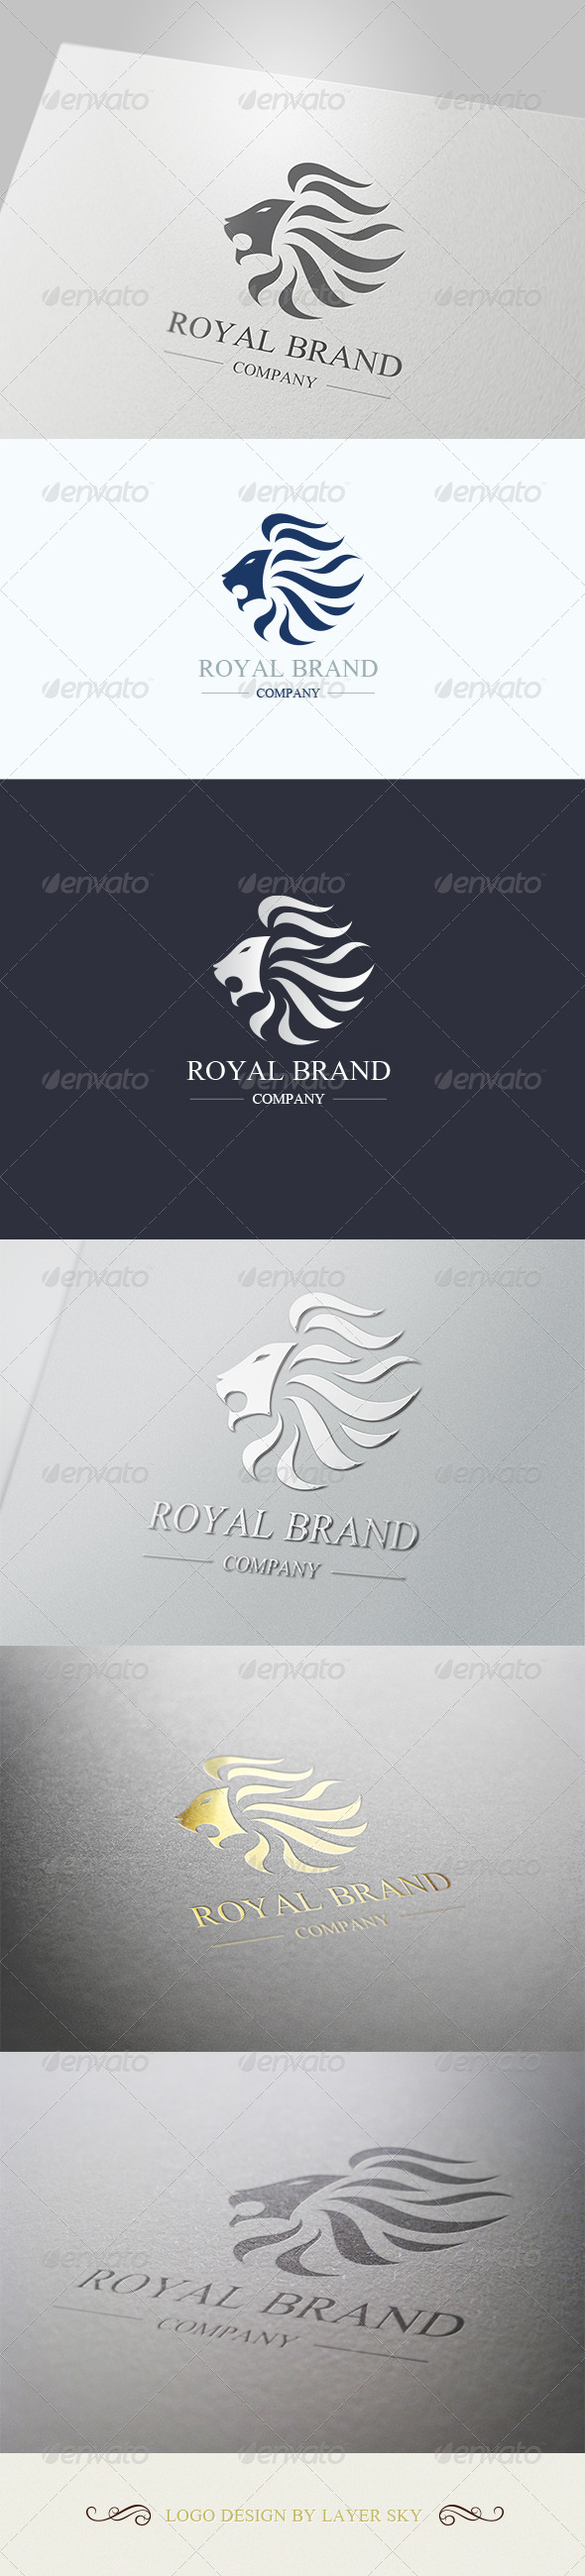 Lion Royal Brand Logo 1 - Crests Logo Templates